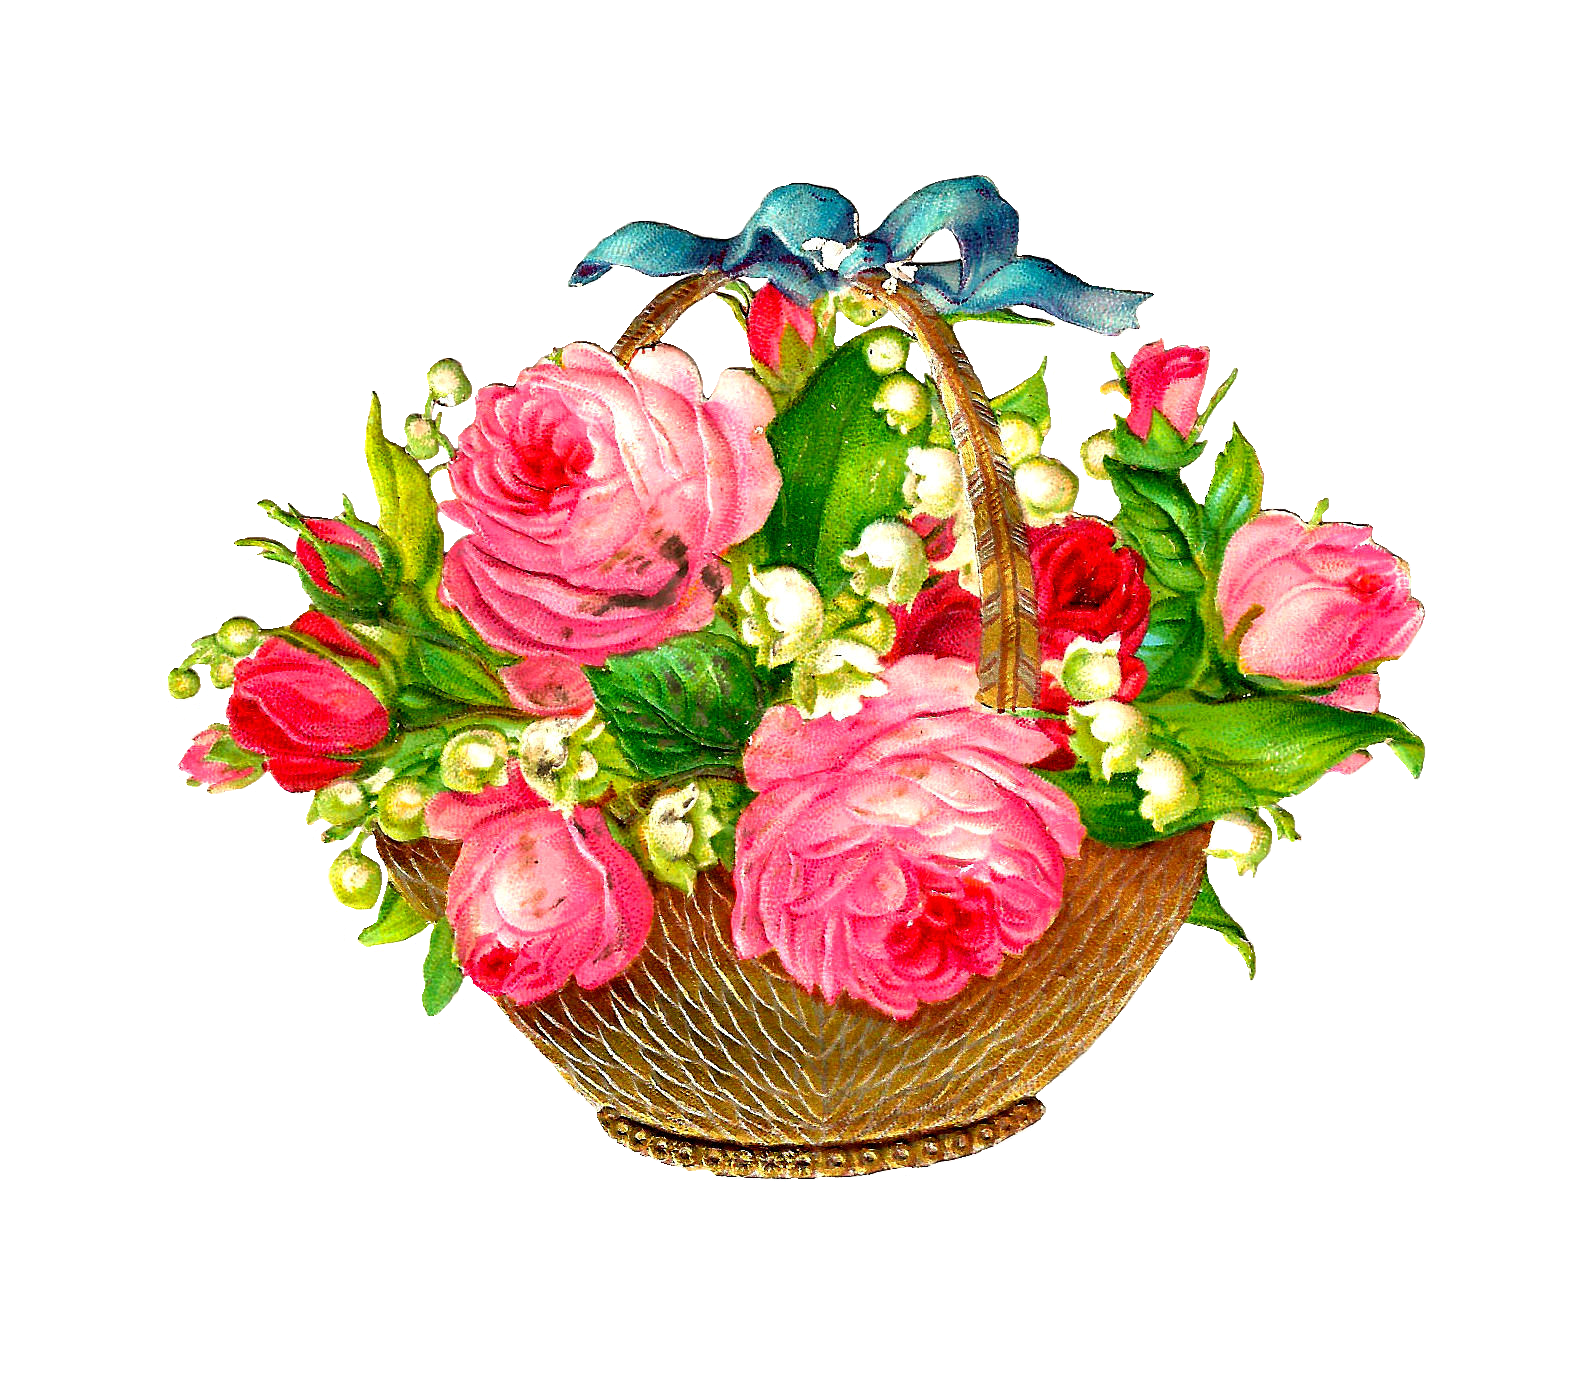 Images Of Flower Baskets : Antique images free flower basket graphic pink roses and